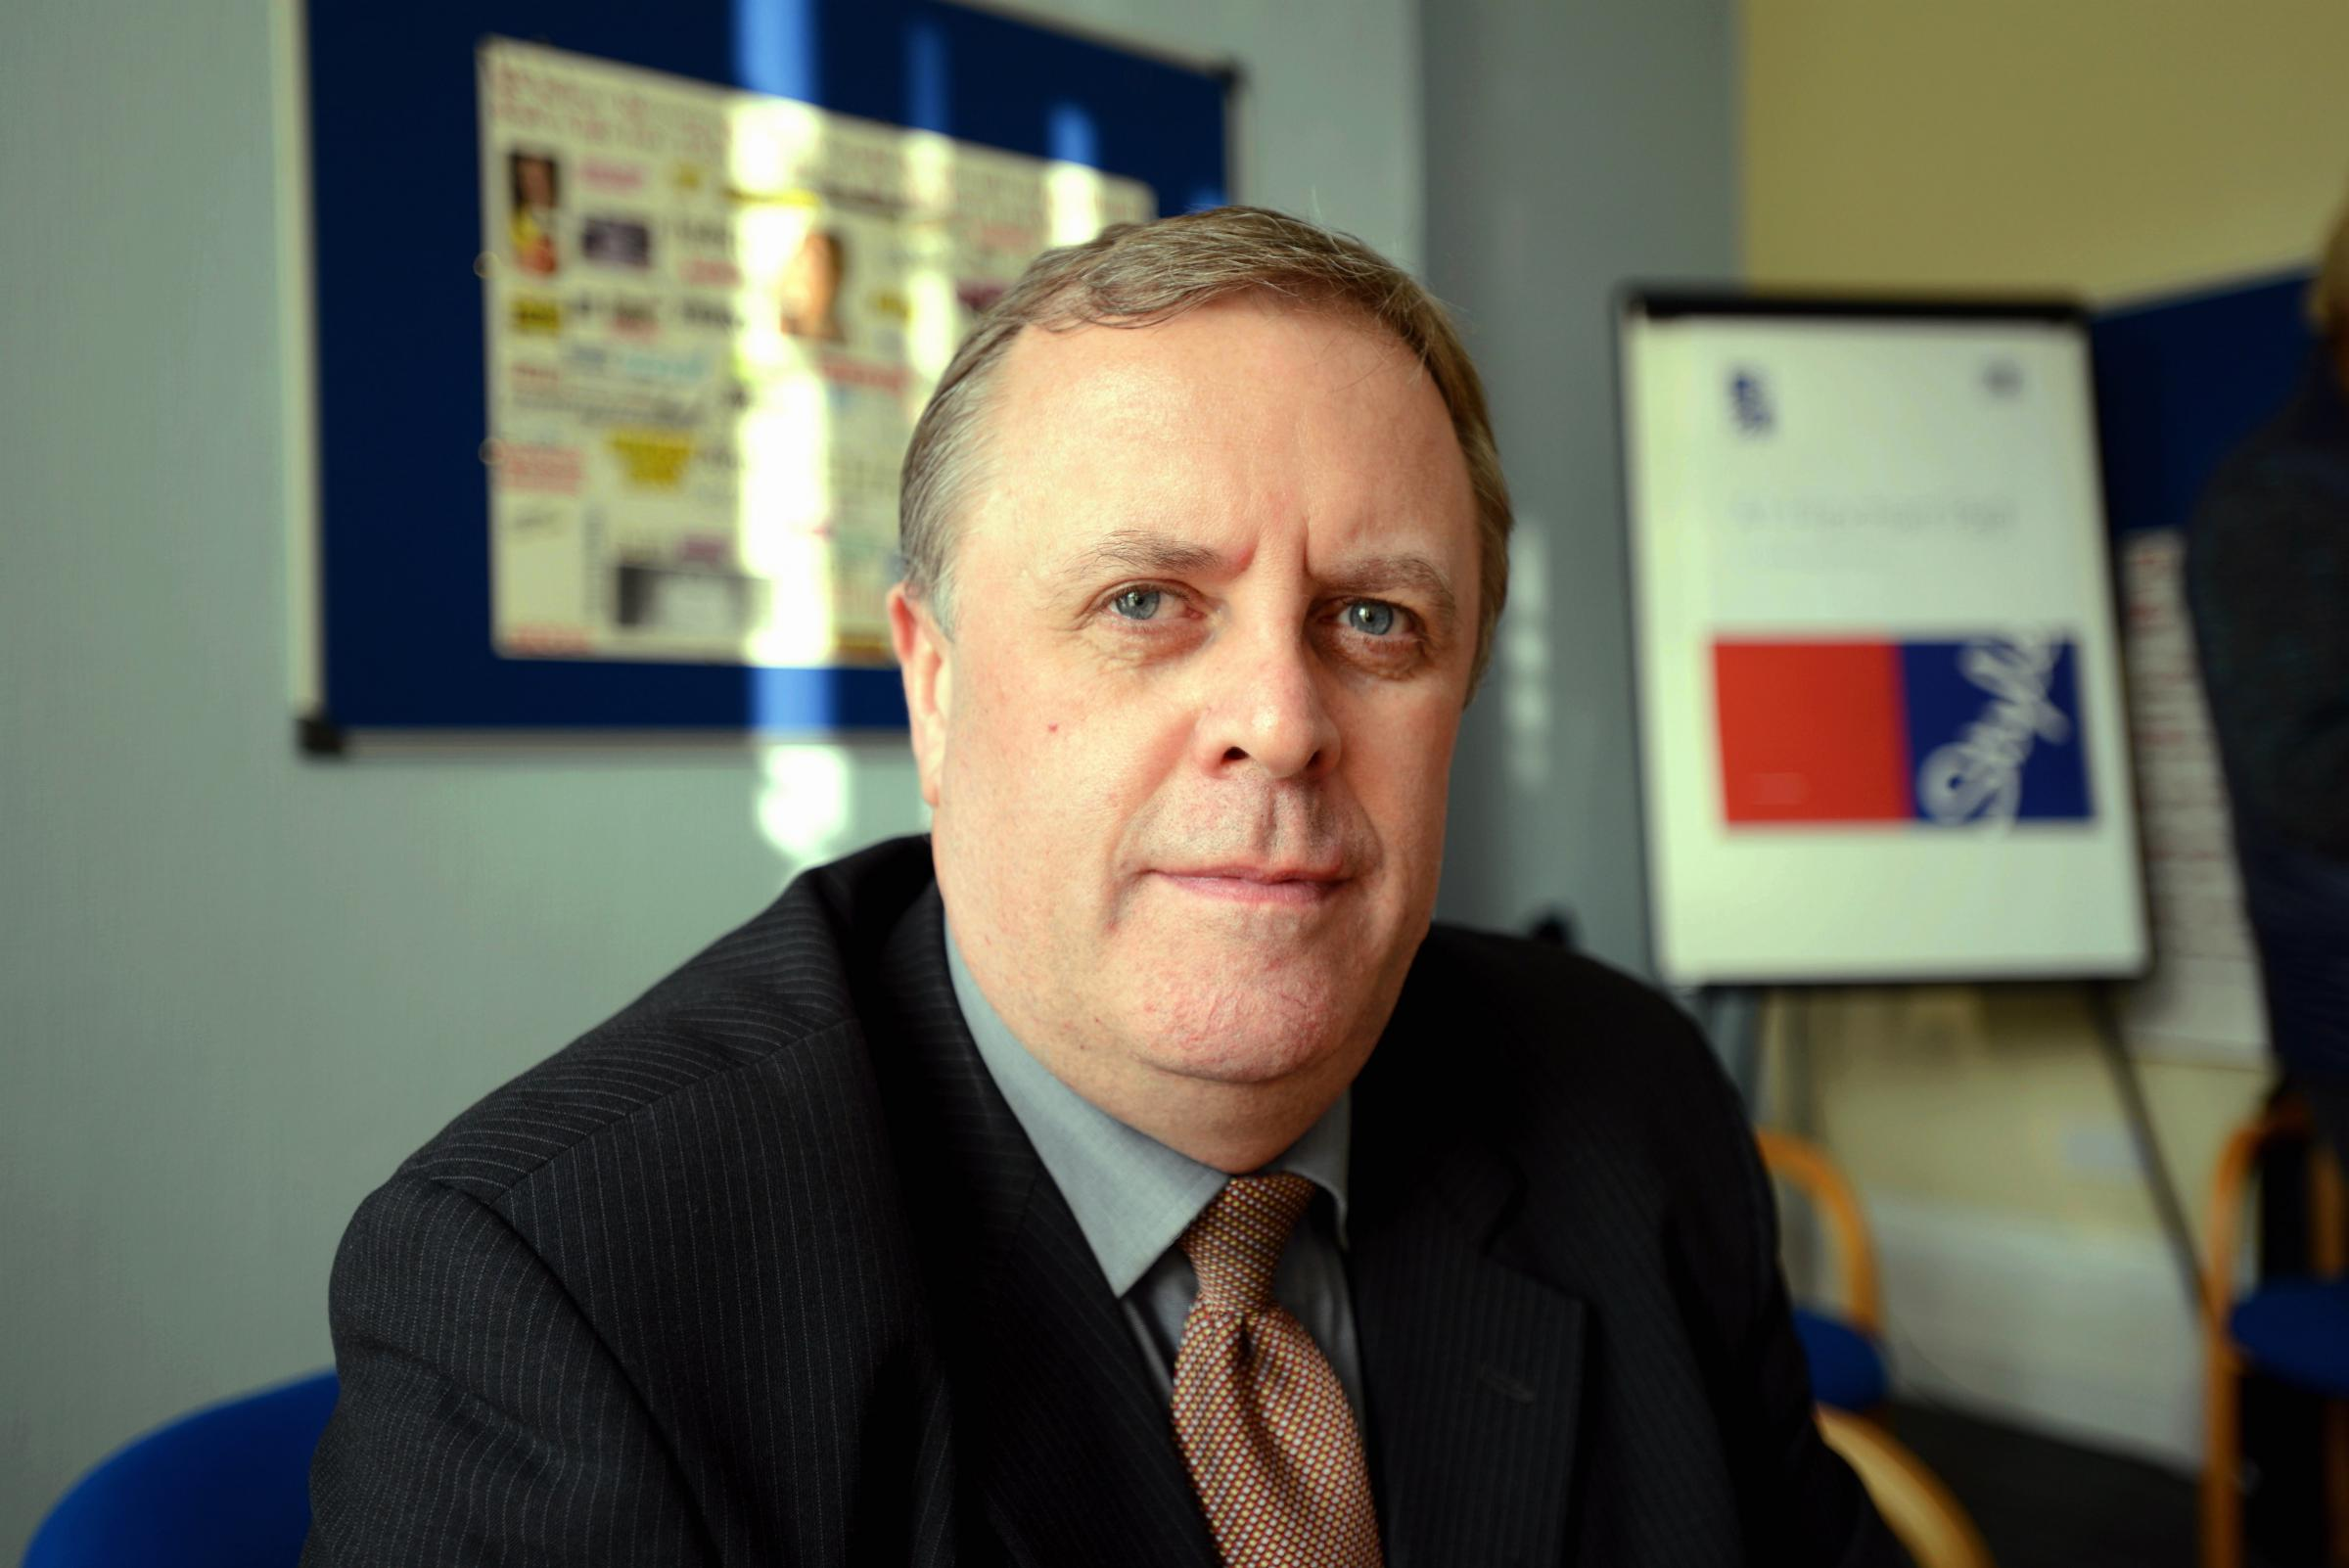 Mark Burns-Williamson, Police and Crime Commissioner for West Yorkshire